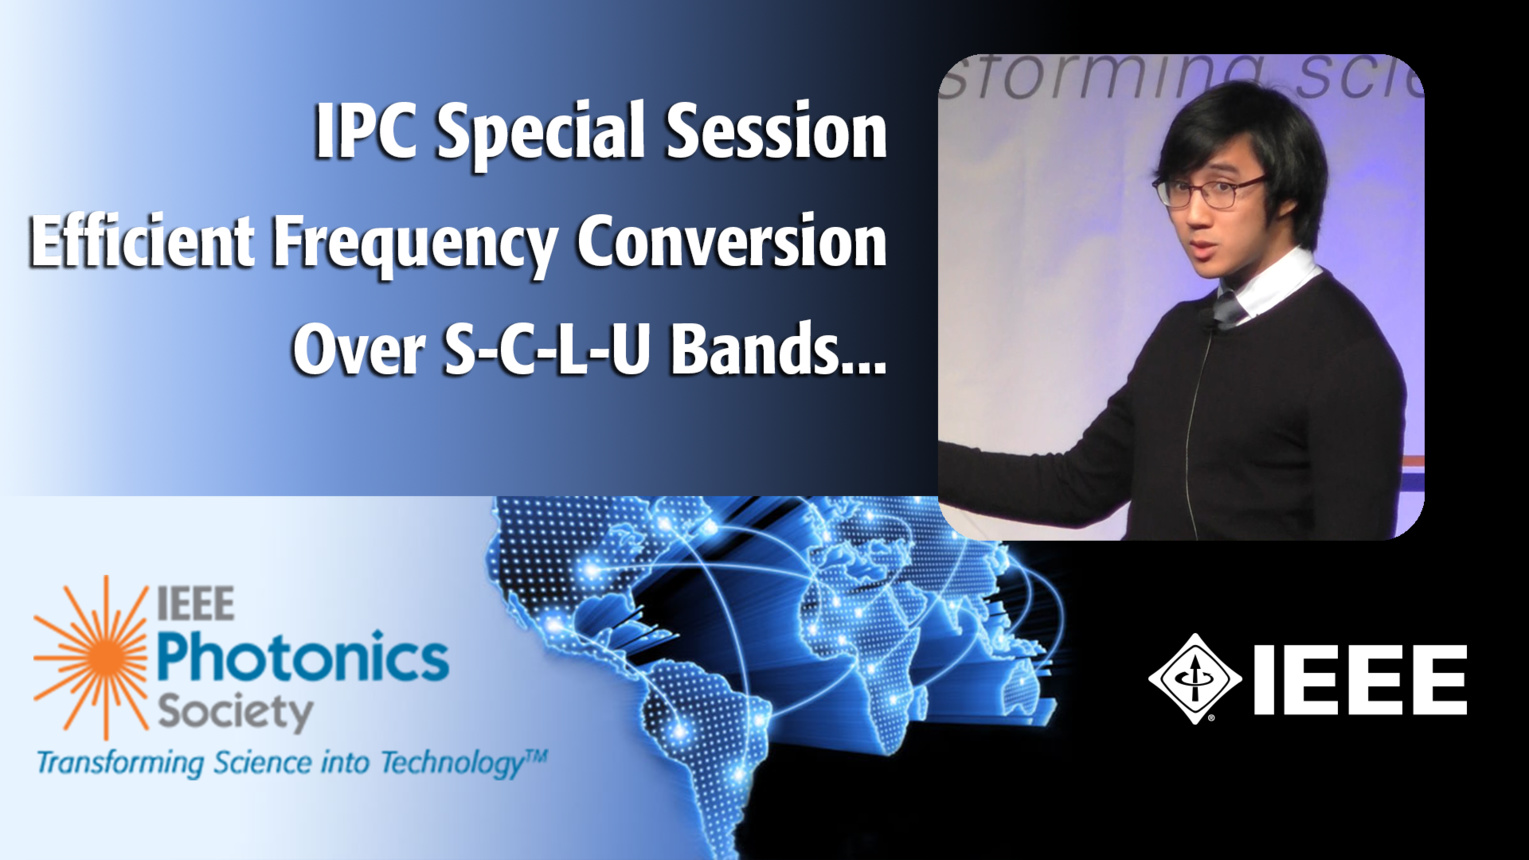 An IEEE IPC Special Session with Meng Lon Iu of the University of Toronto